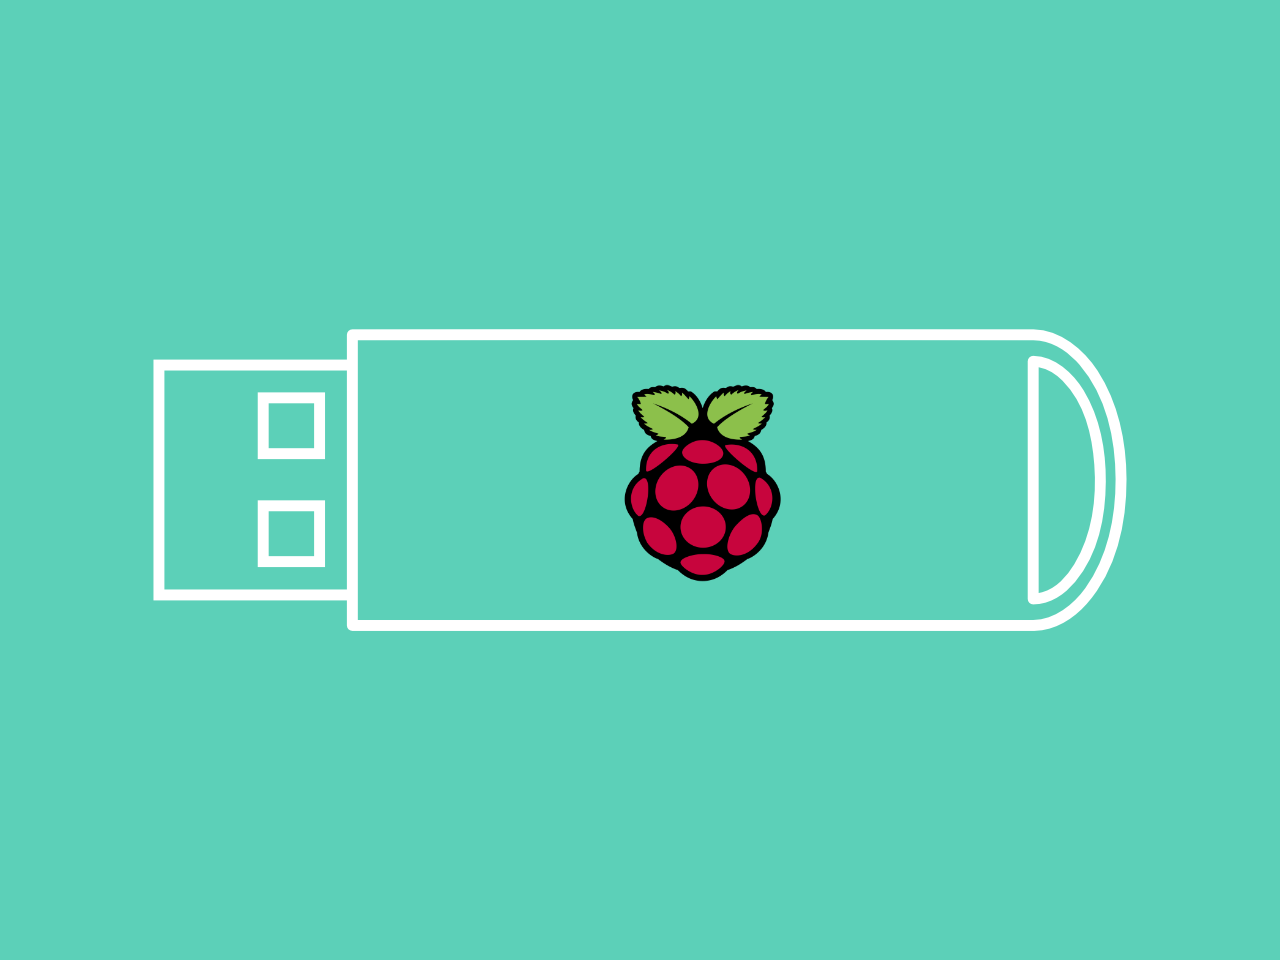 Boost Raspberry Pi performance by installing Raspbian on a USB Flash drive from Windows